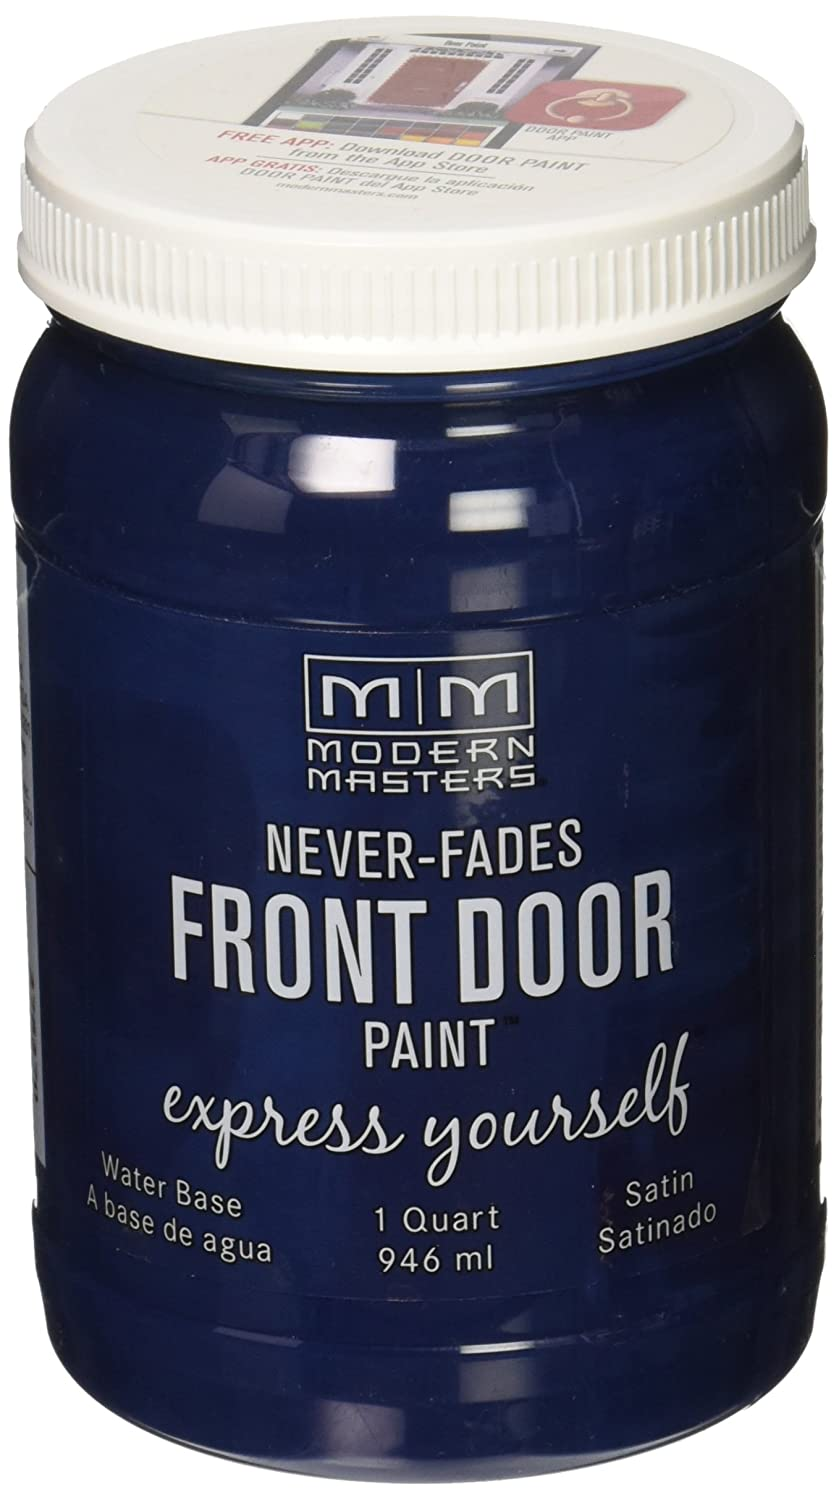 Modern Masters 275264 Satin Front Door Paint, 1 quart, Sophisticated Paint Sundries Solutions